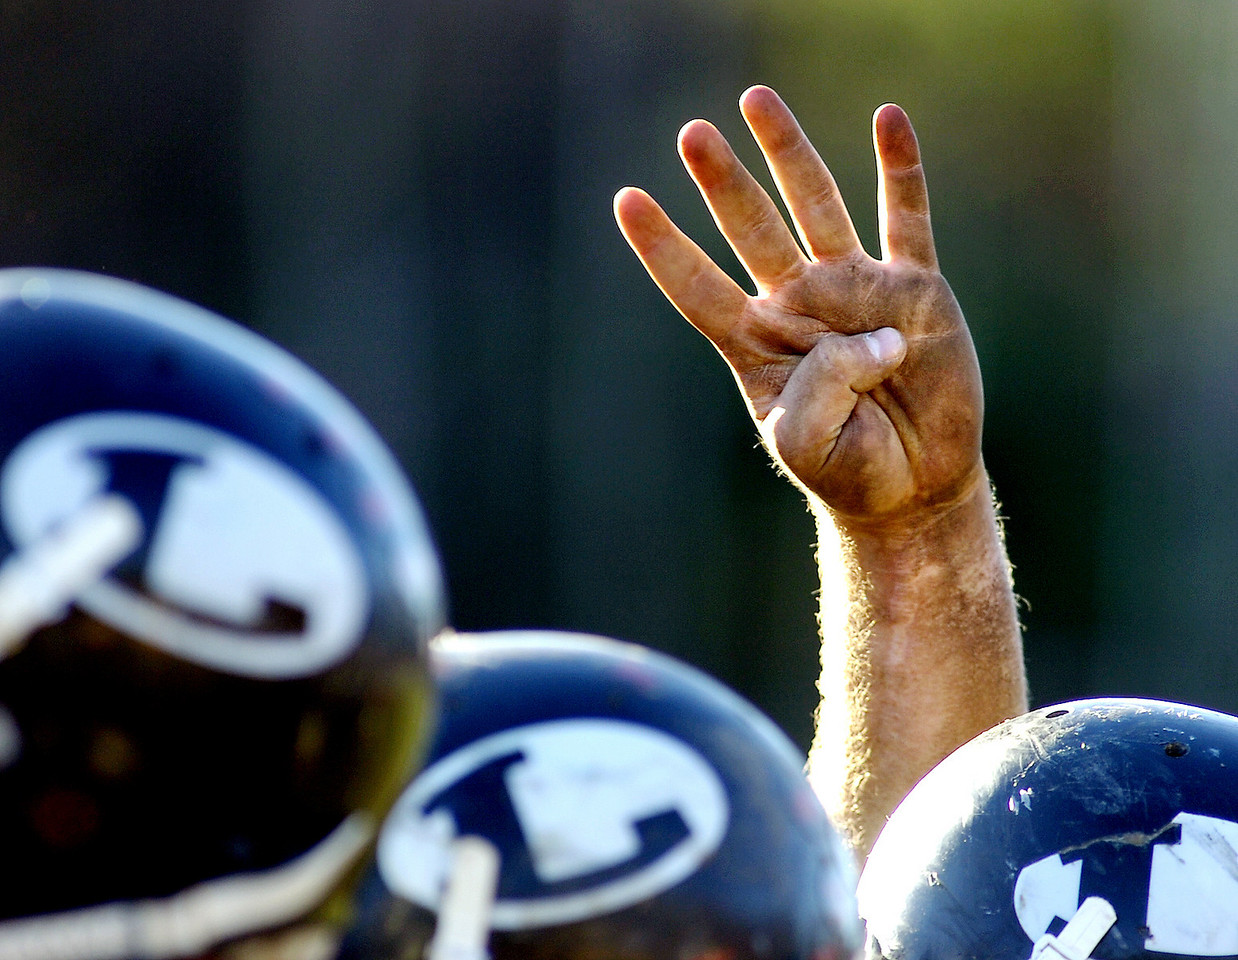 SPORTS DETAILS:<br /> The dirty hand of a Lisbon player signals the start of the fourth quarter of Saturday's game in Lisbon.  The Greyhounds outran the Seahawks to advance to next week's state championship game in Portland.